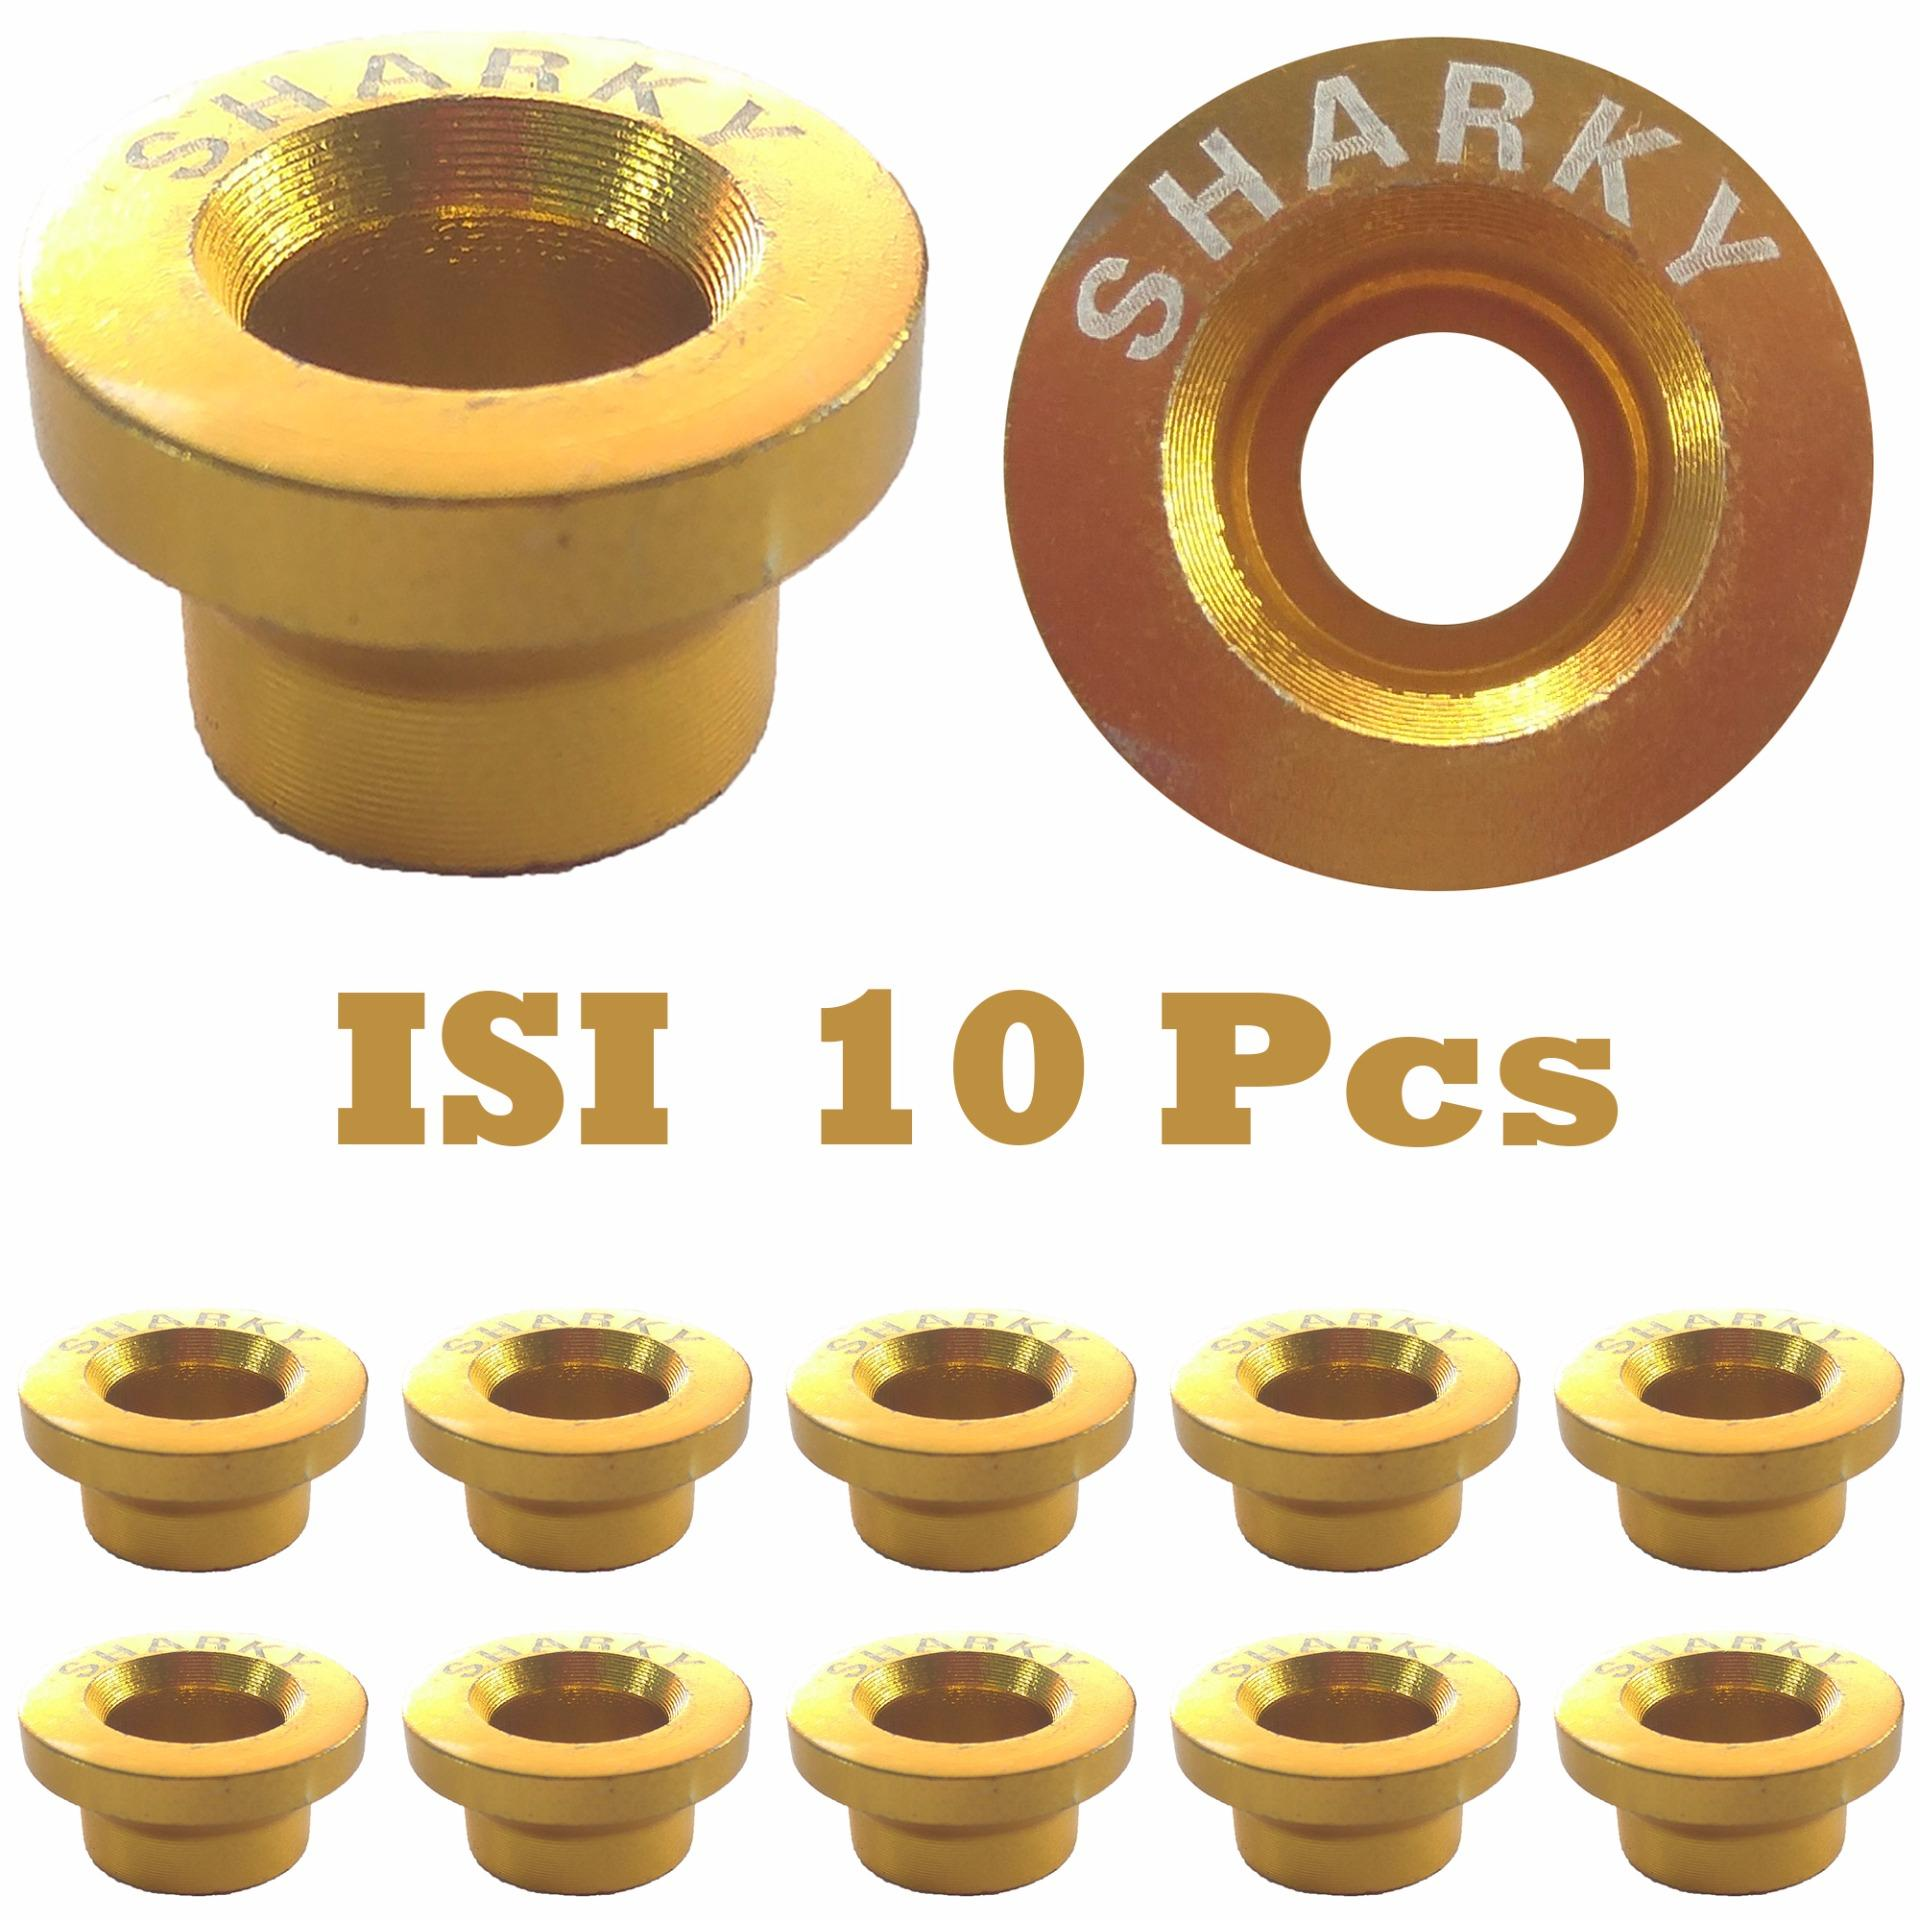 Ring Monel Sharky Isi 10 Pcs Bahan Logam Aluminium - Variasi Motor - Gold By Virgo Shop.